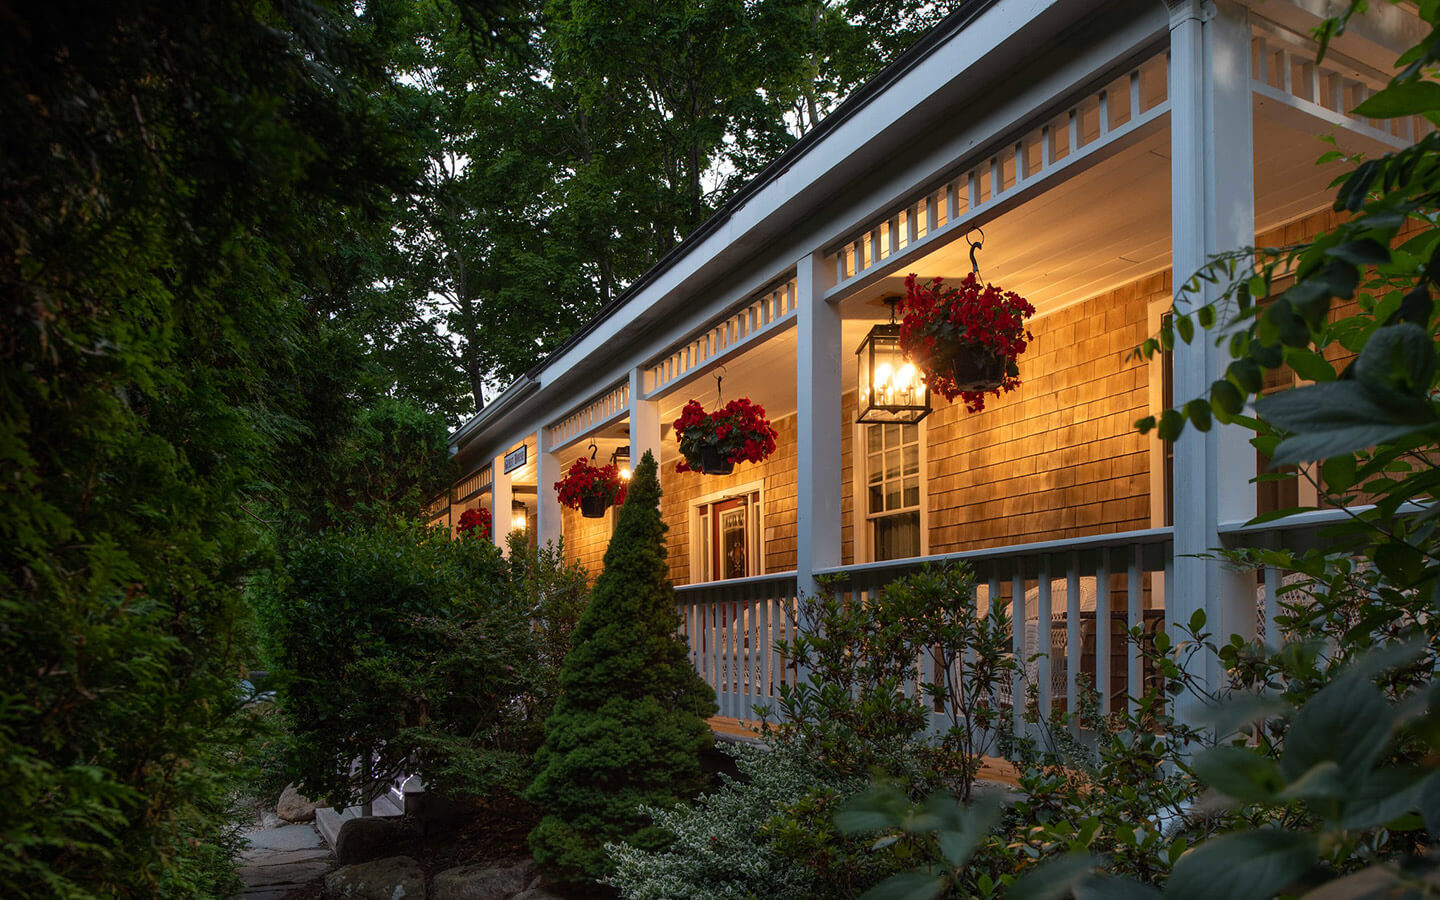 Porch at Palmer House in the evening